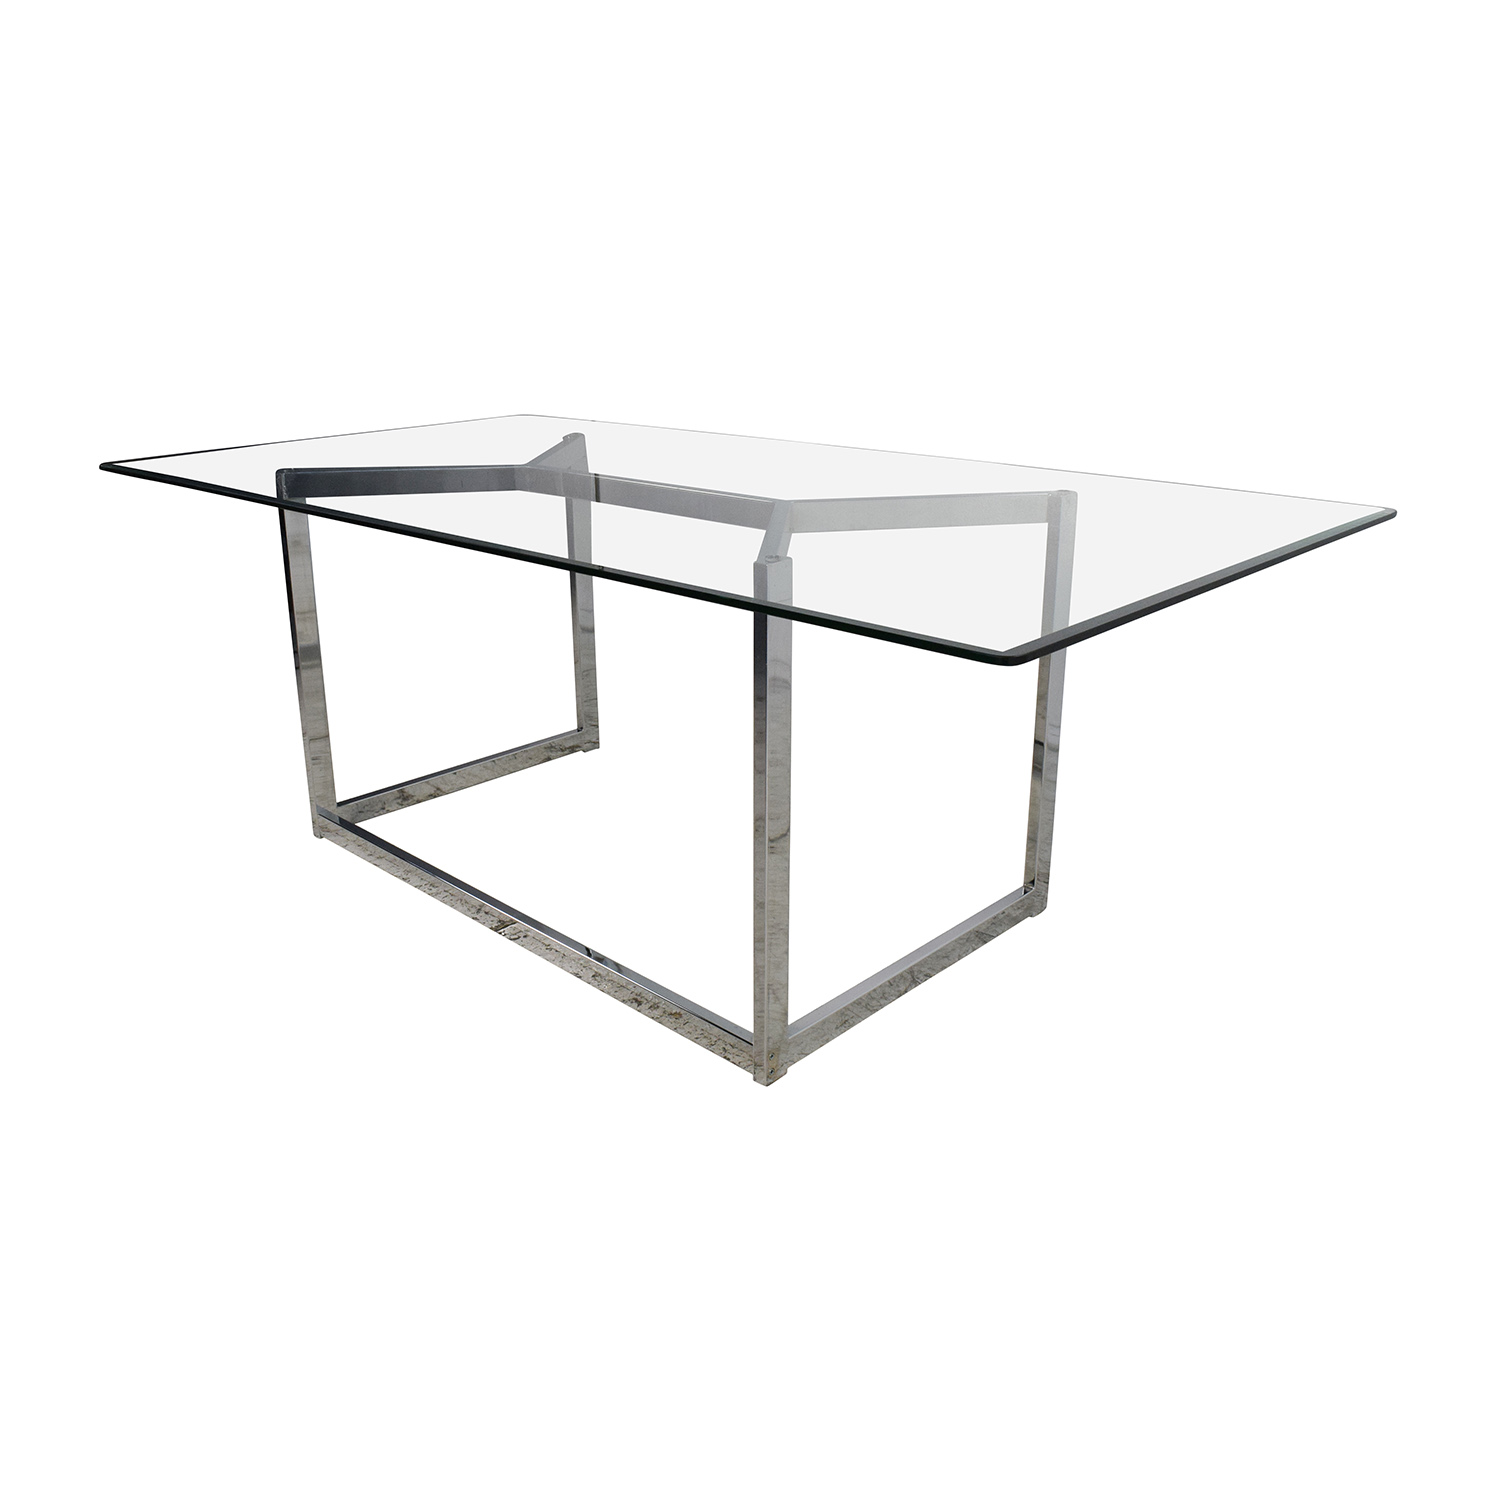 30 off cb2 cb2 tesso chrome and glass dining table tables for Glass and chrome dining table